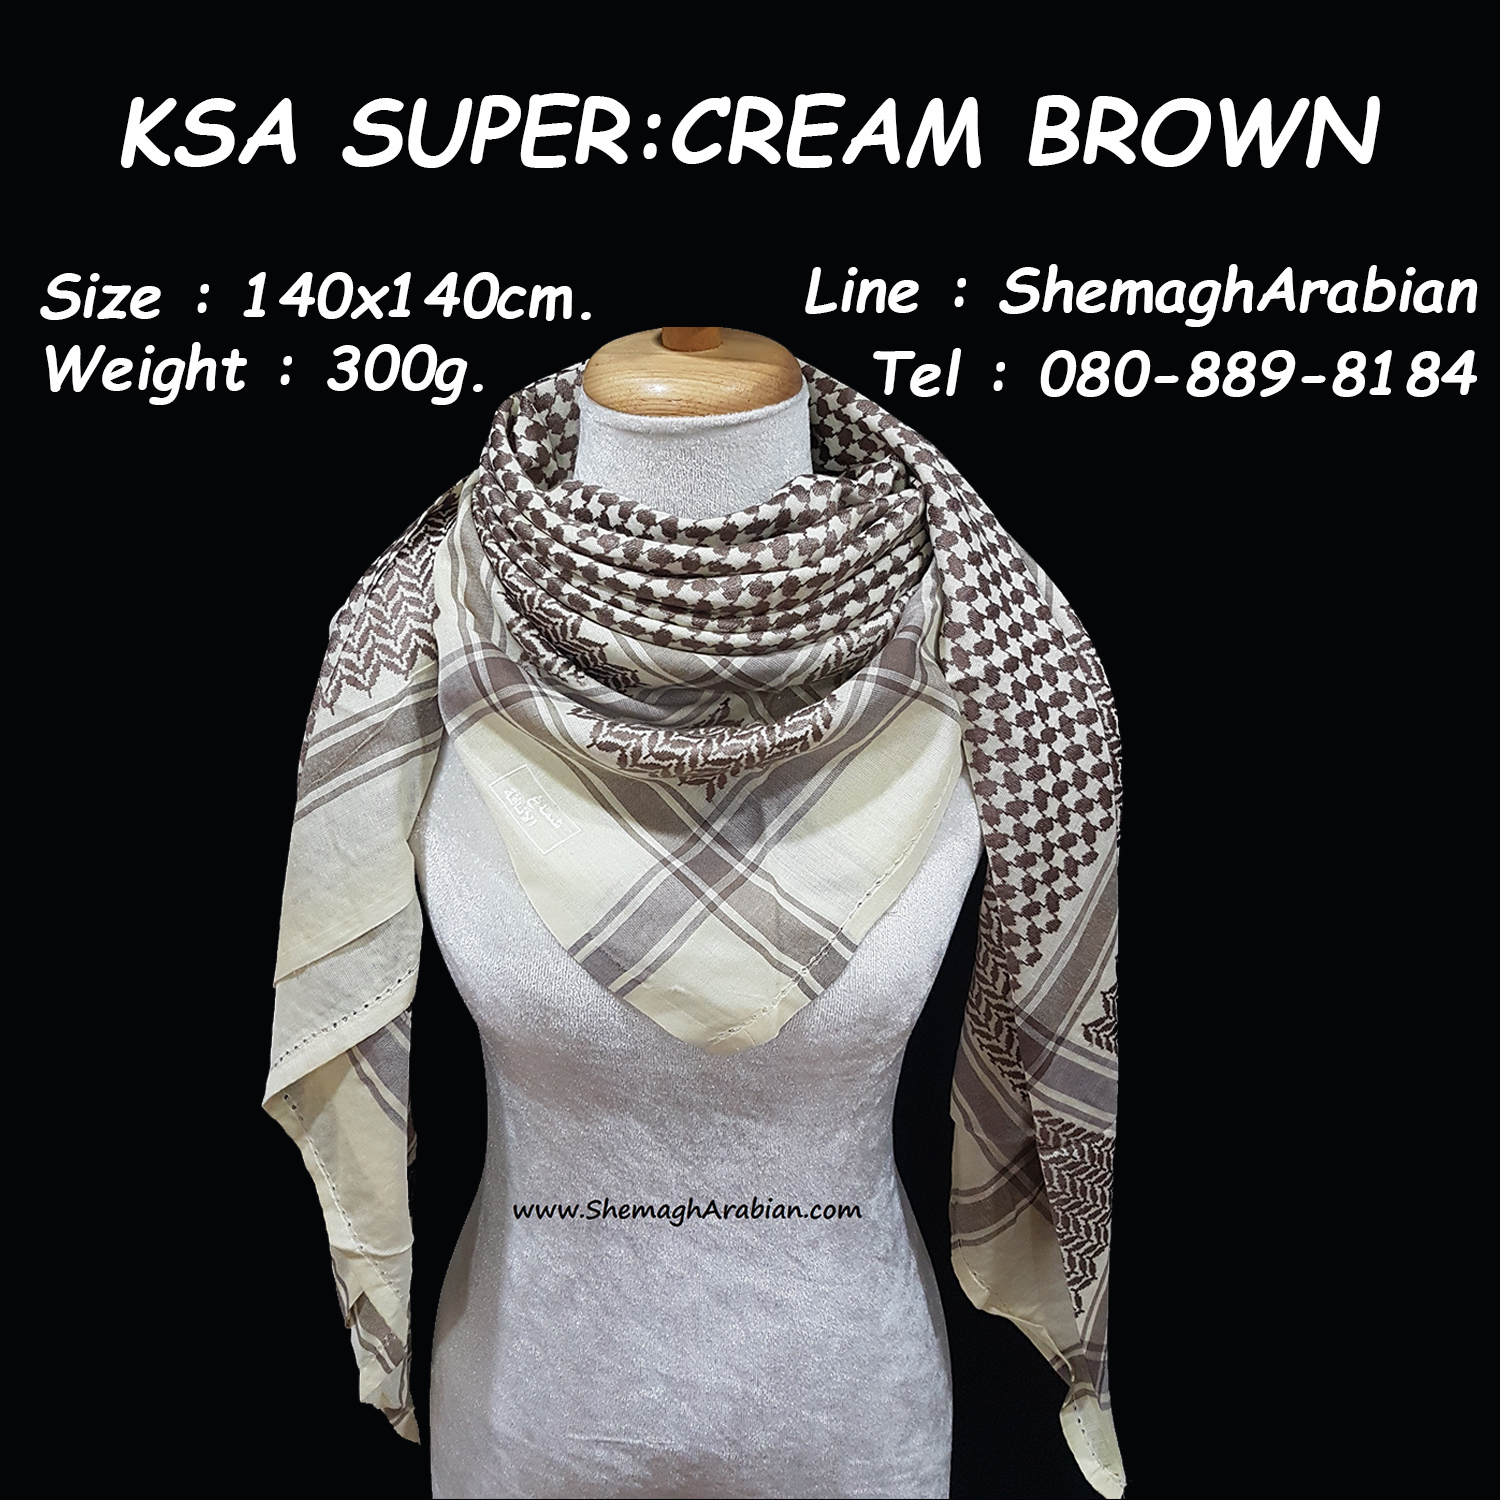 KSA SUPER : CREAM-BROWN